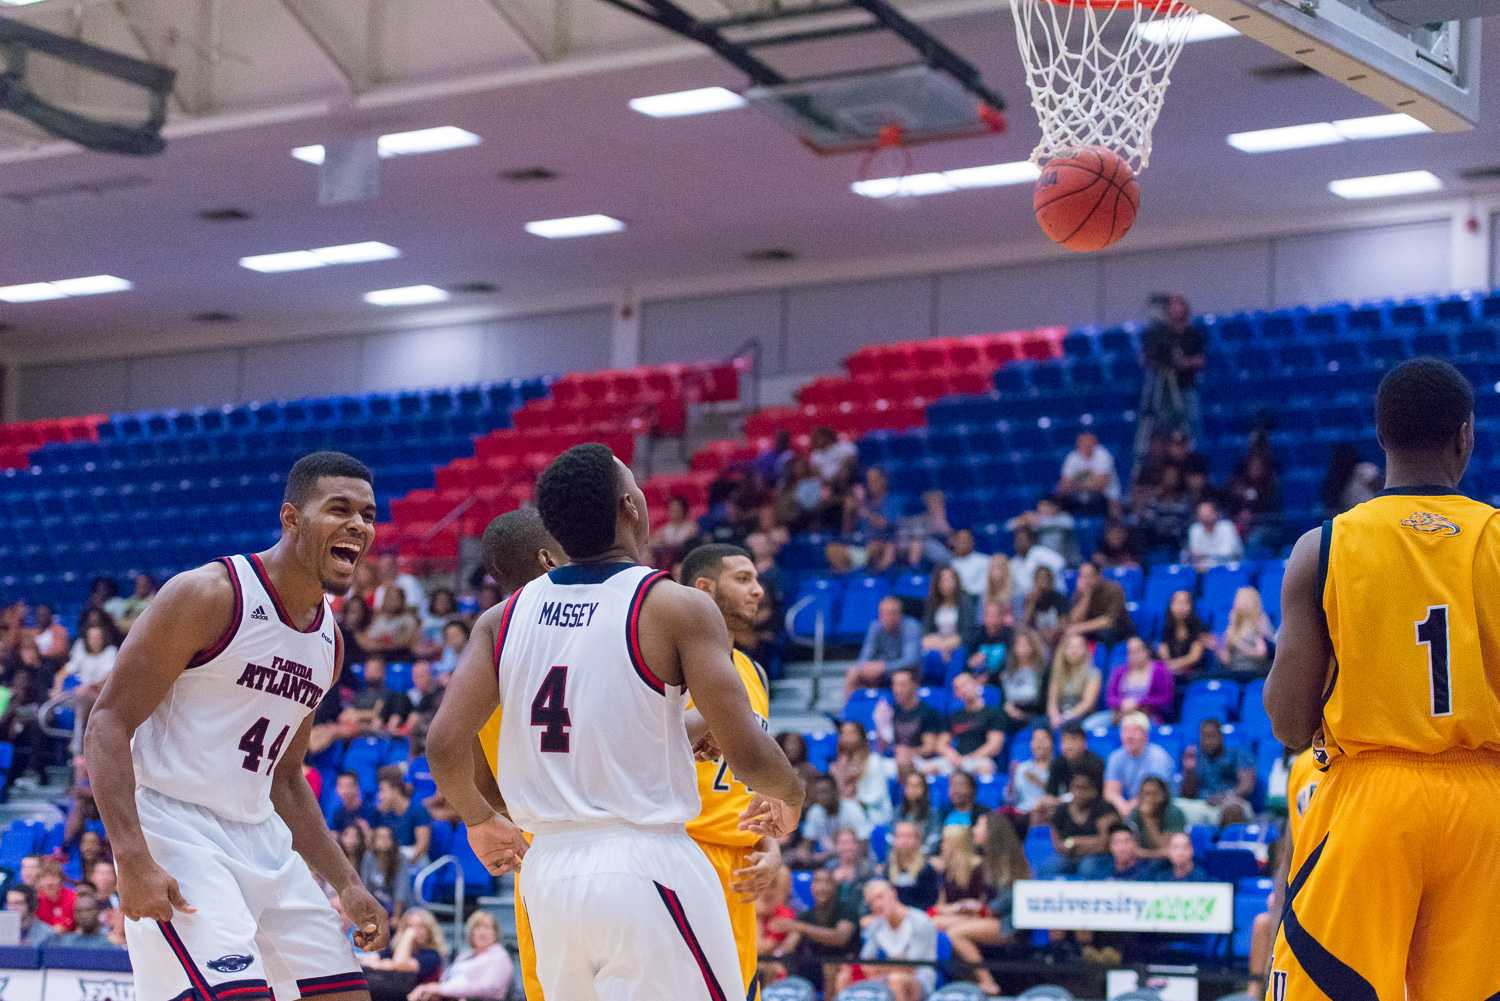 FAU v. Warner_MBB_NIKON D610_11-17-14_0966_Lightroom